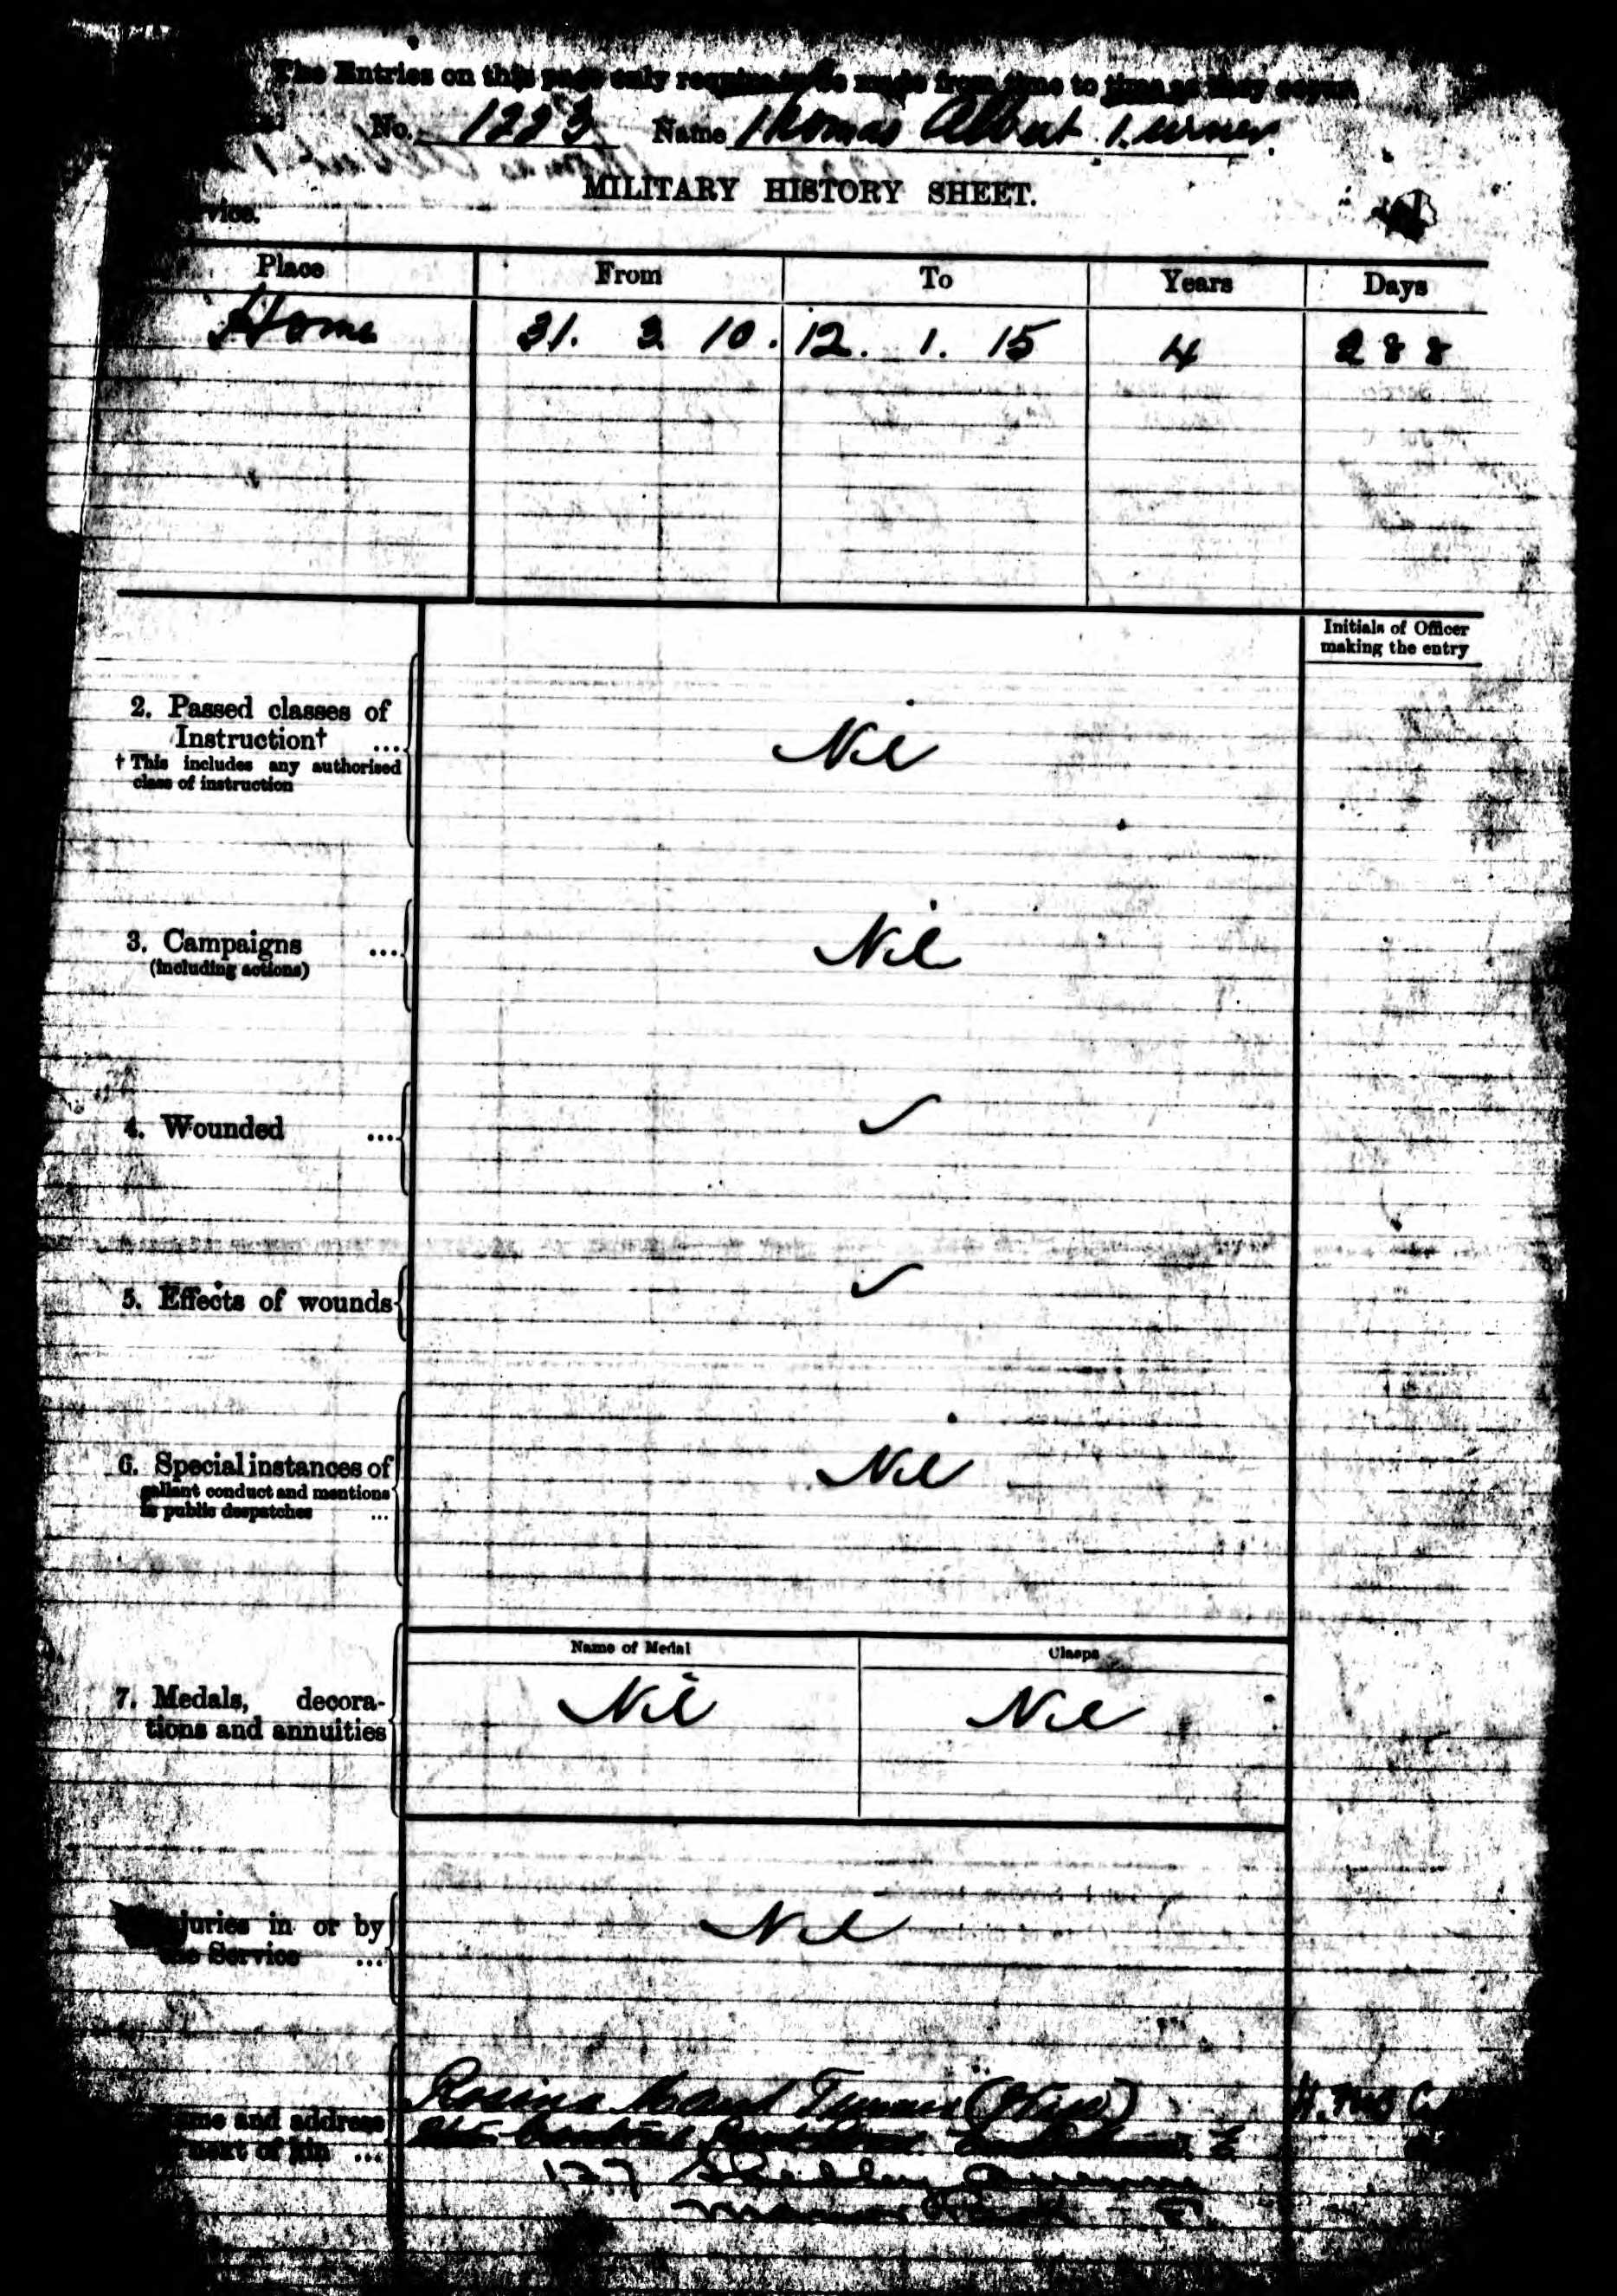 British Army WWI Pension Record for Thomas Albert Turner p06